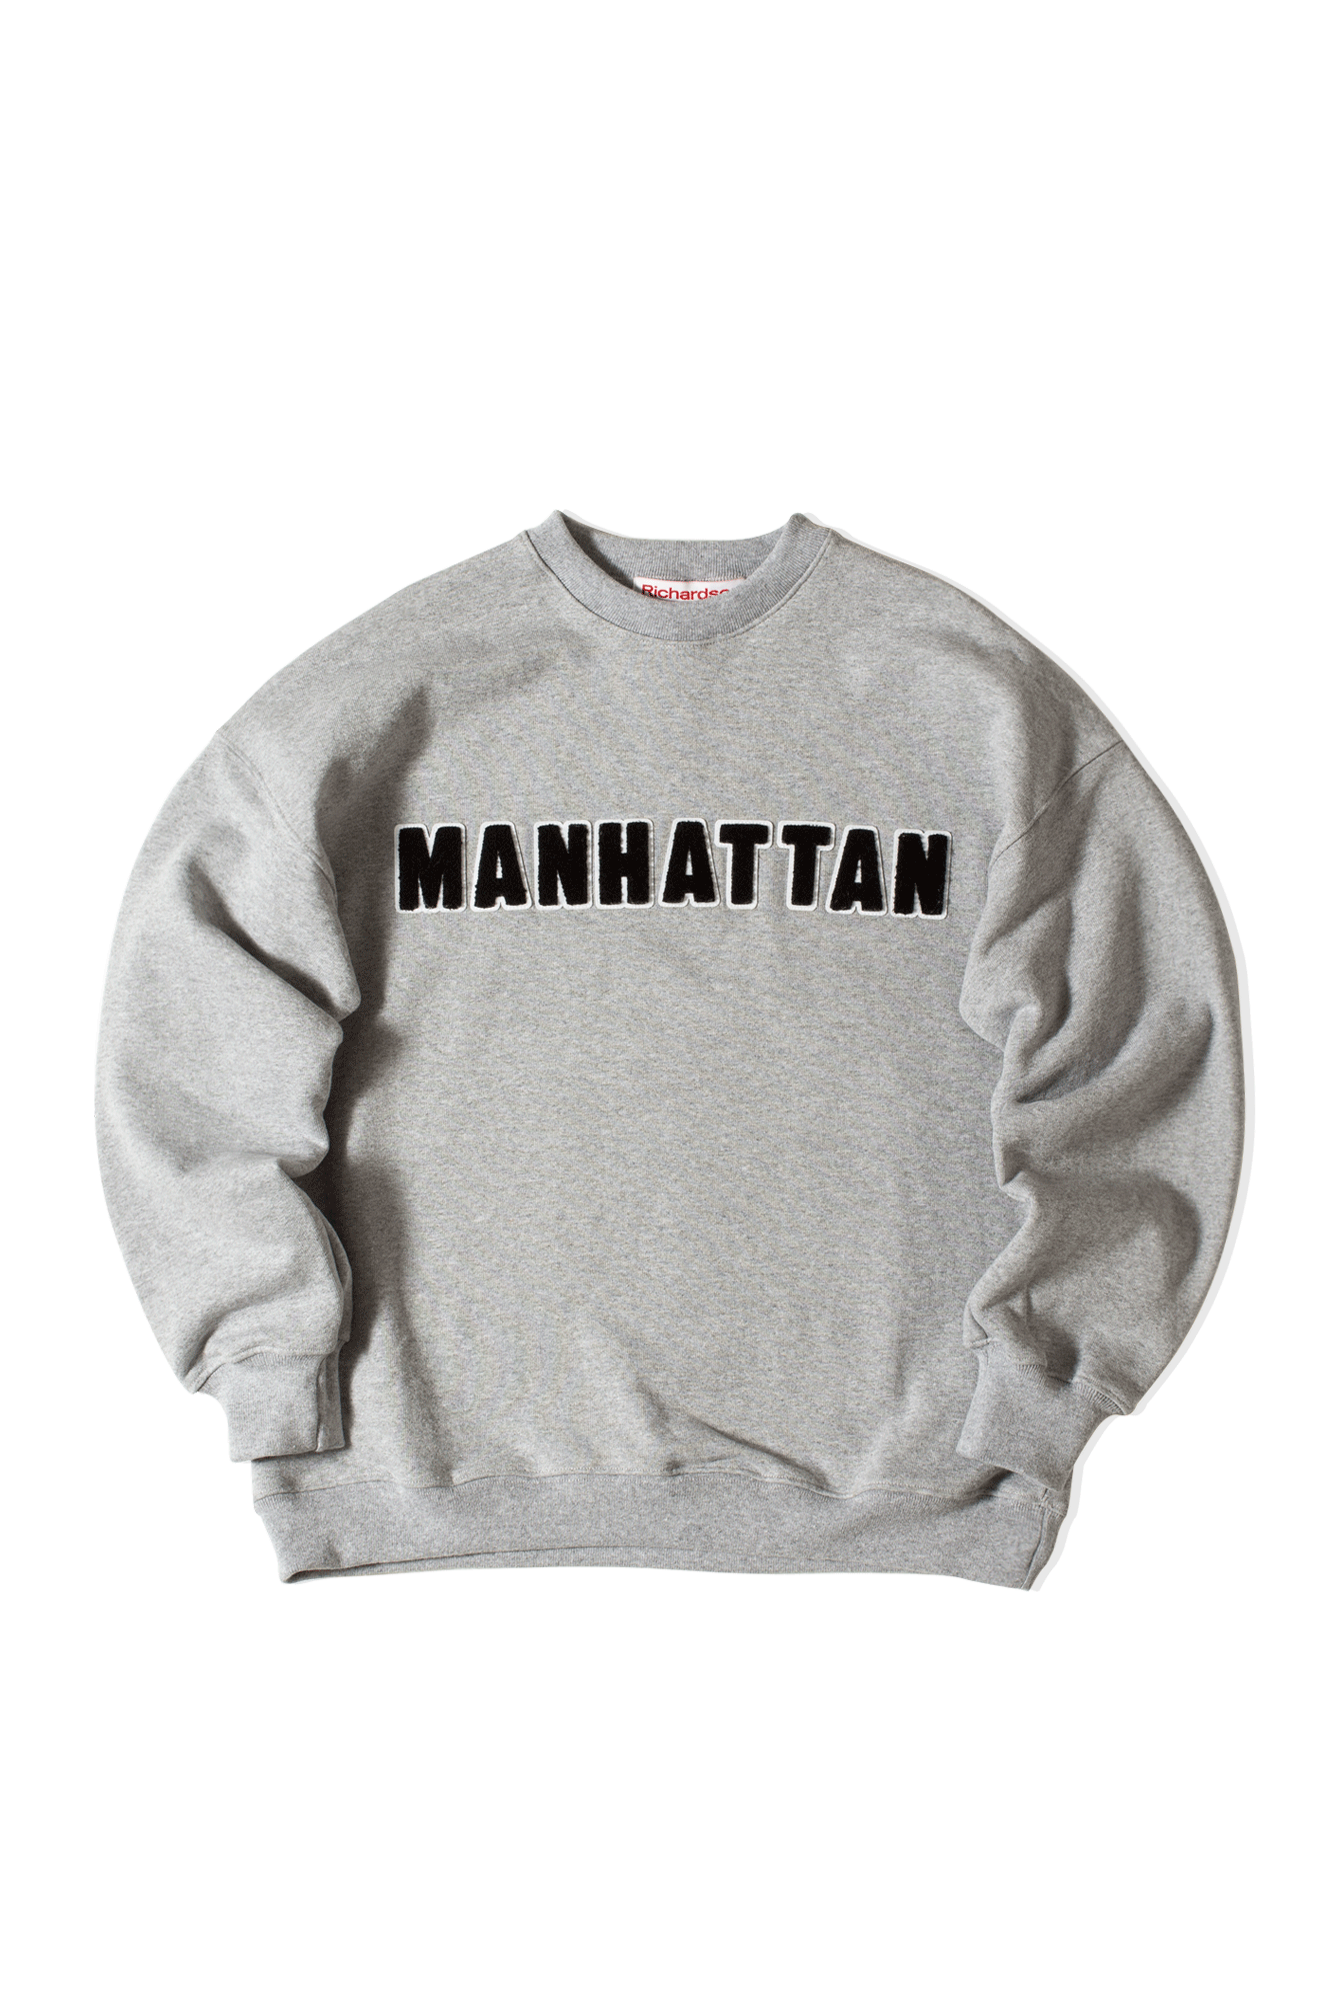 Richardson Mag Felpe girocollo District Crewneck Grigio FW20042#000#MNTGRY#M - One Block Down